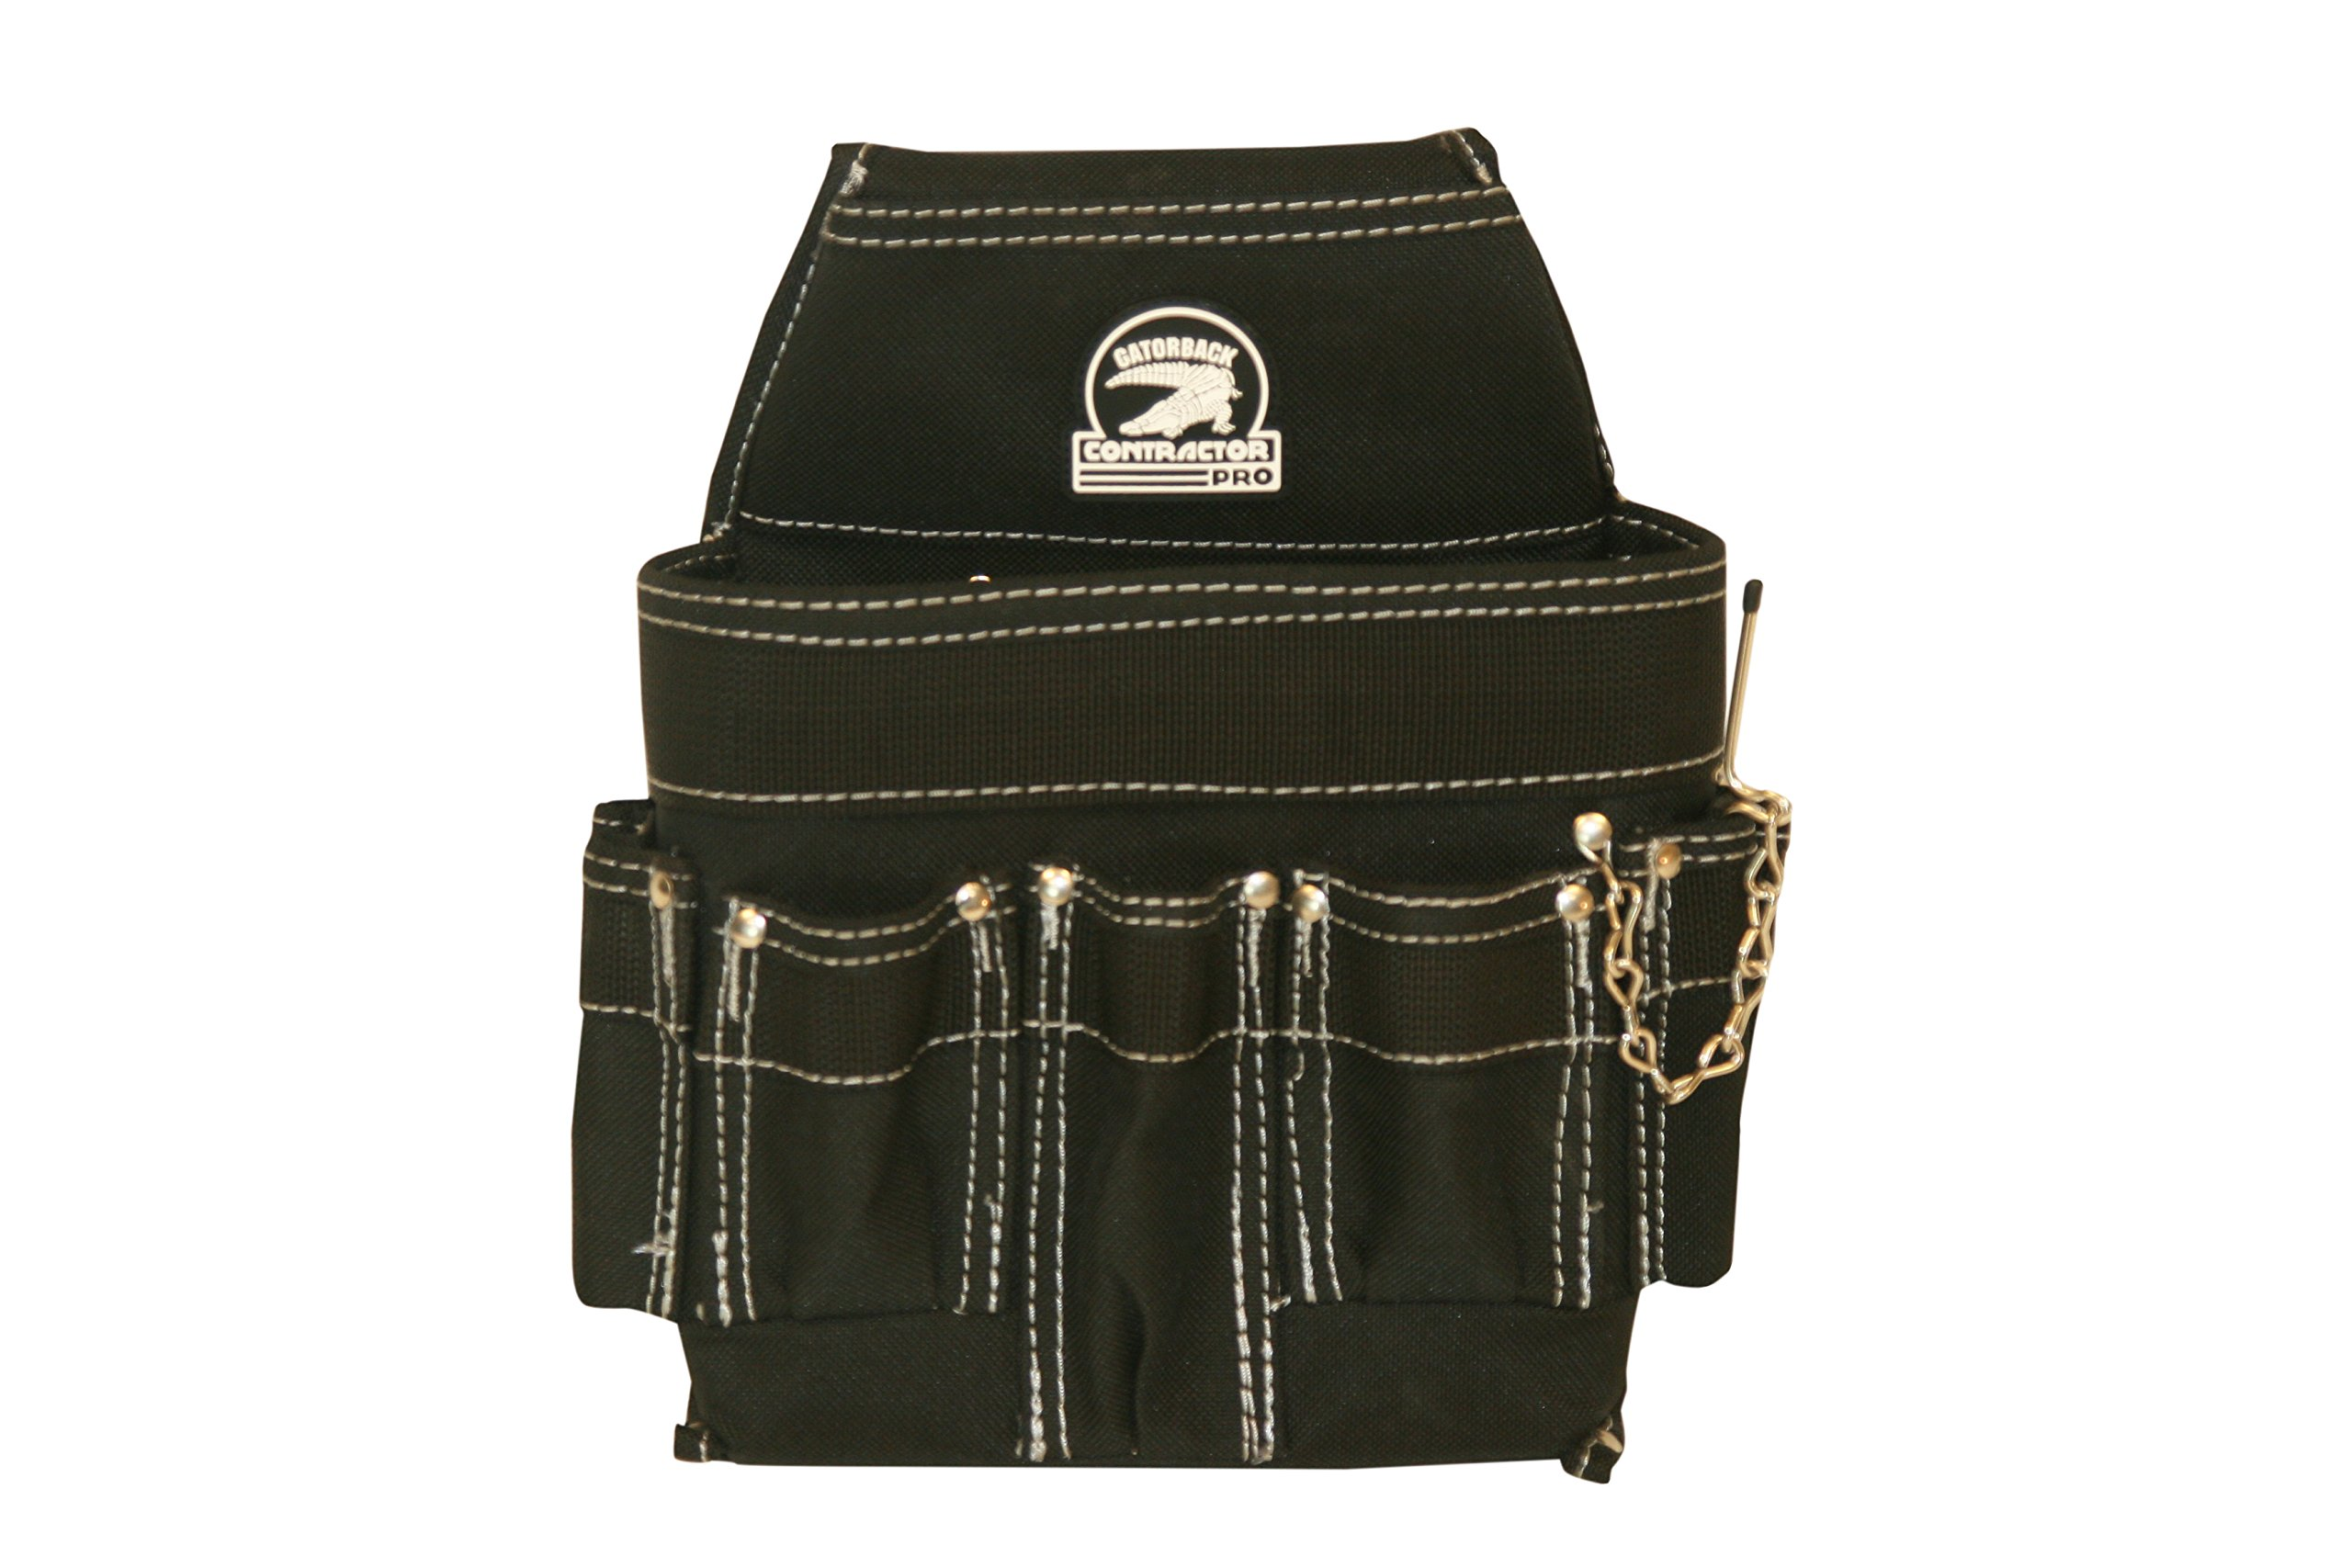 Gatorback Professional Electrician's Tool Belt Combo w/ Padded Comfort Belt (Medium 31-34 Inch Waist). Ventilated Comfort Belt with Heavy Duty Pouches for Electricians, Carpenters, Hvac, Drywaller. by Contractor Pro (Image #4)